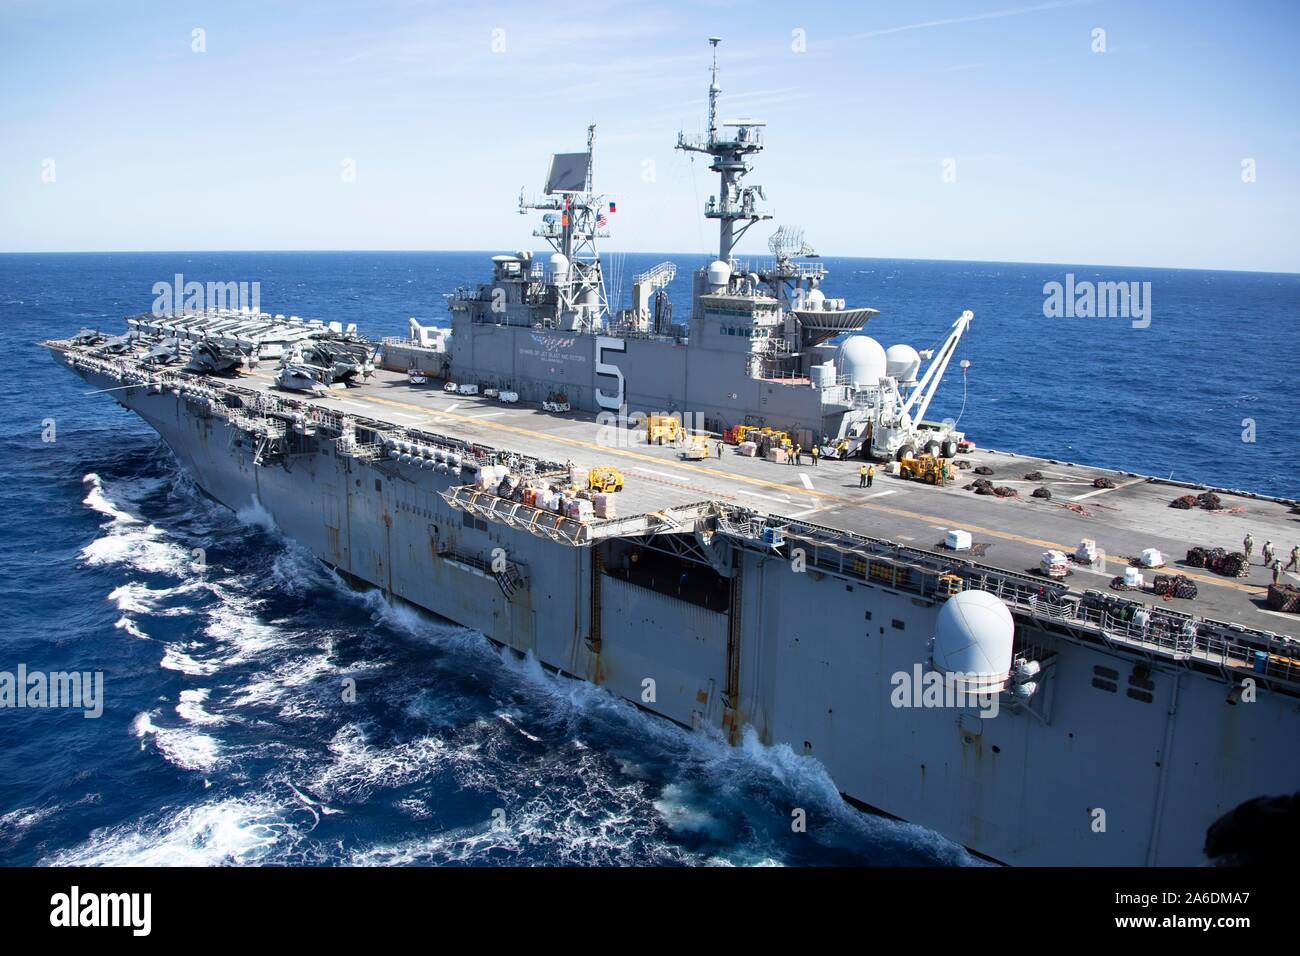 191023-N-MH210-1519  ATLANTIC OCEAN (Oct. 23, 2019) - The amphibious assault ship USS Bataan (LHD 5) sails the Atlantic Ocean, Oct. 23, 2019. Bataan is underway conducting a composite training unit exercise (COMPTUEX) with the Bataan Amphibious Ready Group and 26th Marine Expeditionary Unit. (U.S. Navy photo by Mass Communication Specialist 2nd Class Zachary A. Anderson) Stock Photo